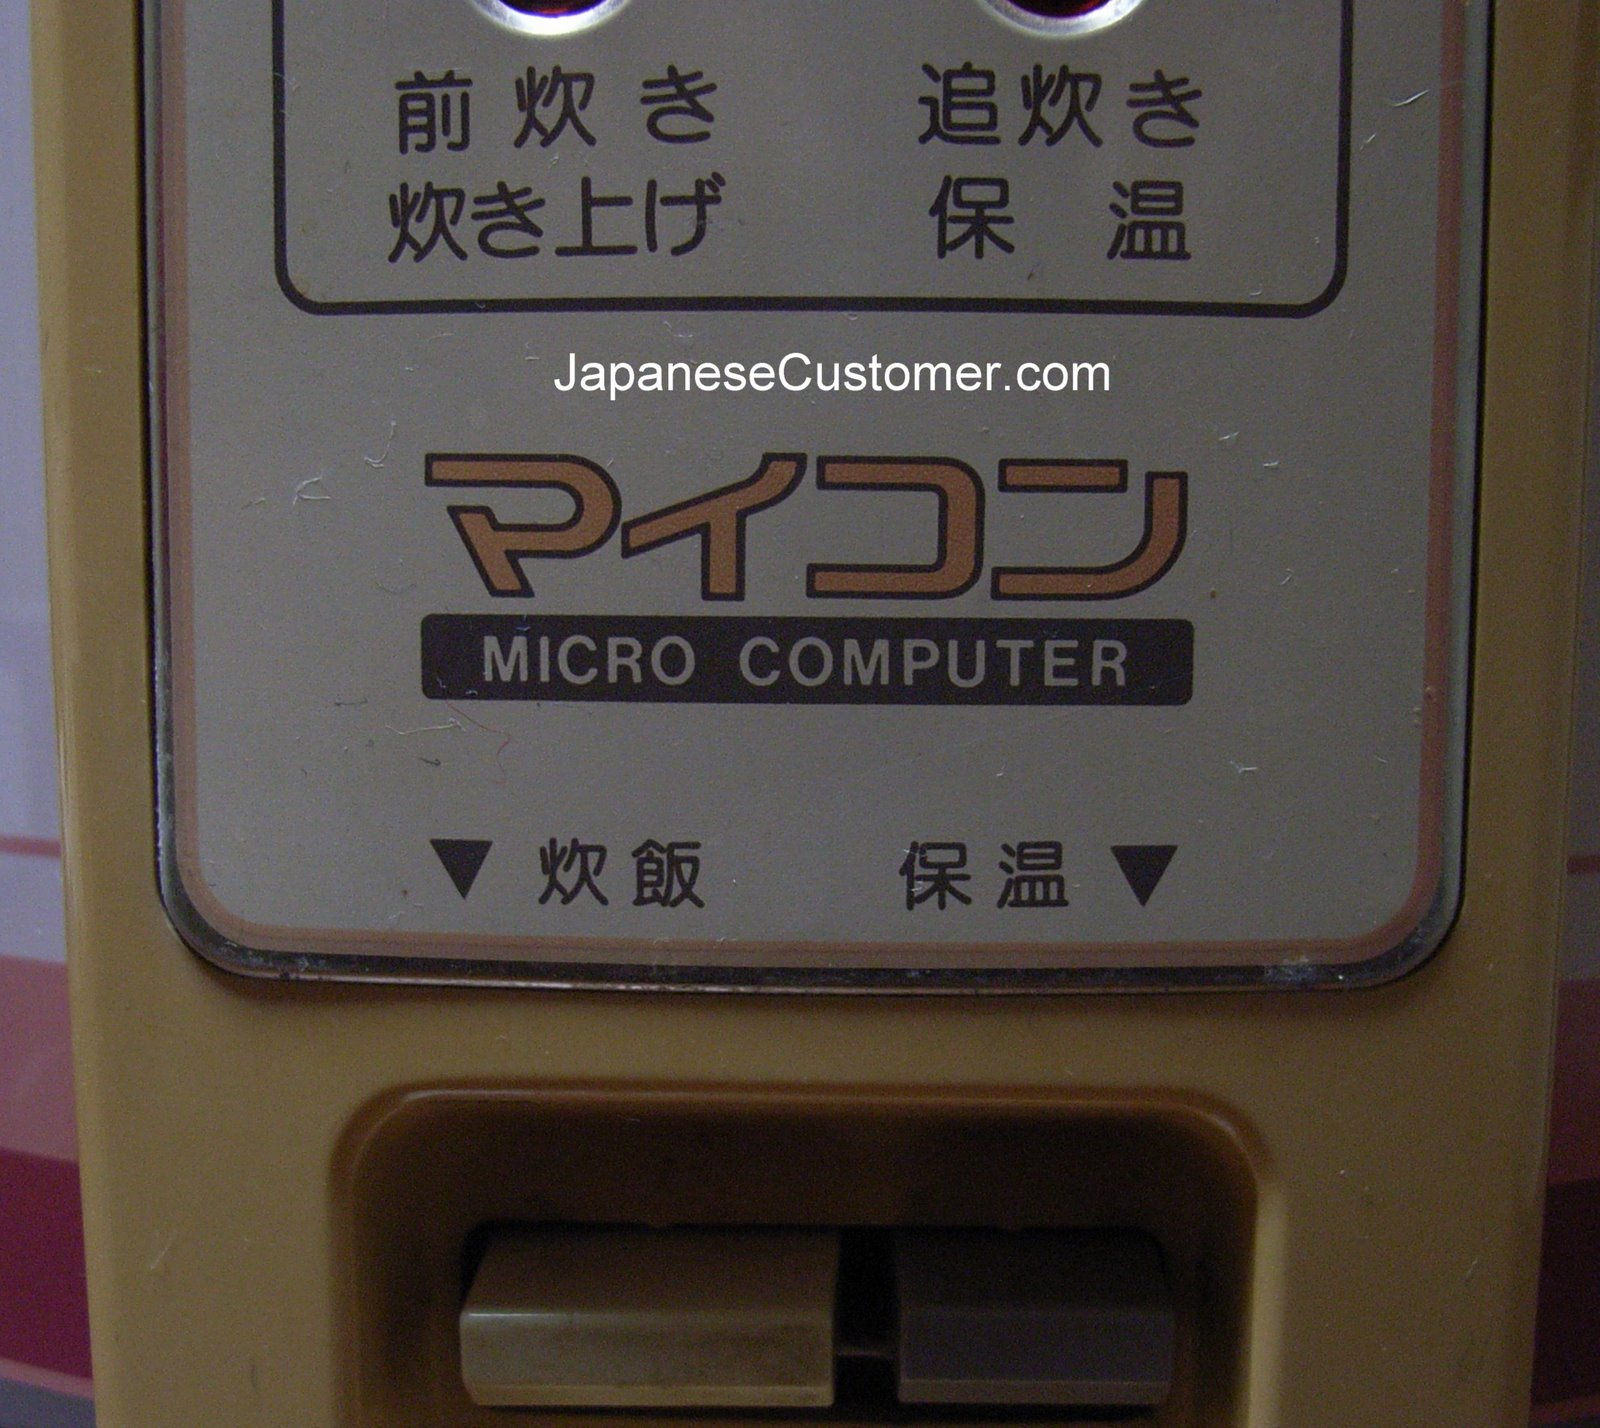 Japanese electric rice cooker Copyright Peter Hanami 2005